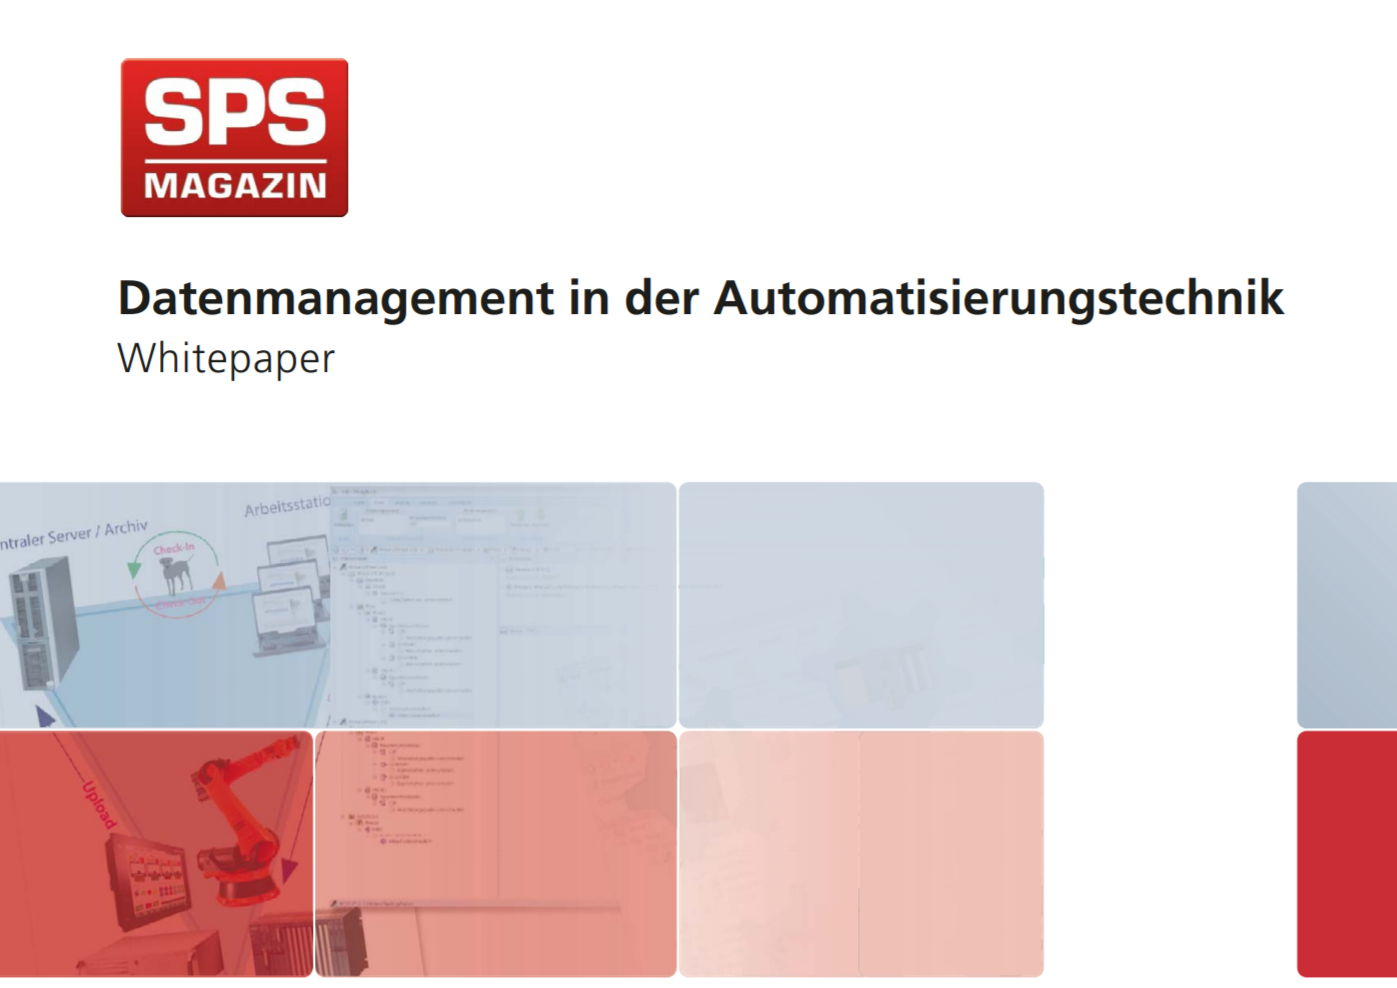 Datenmanagement in der Automatisierungstechnik